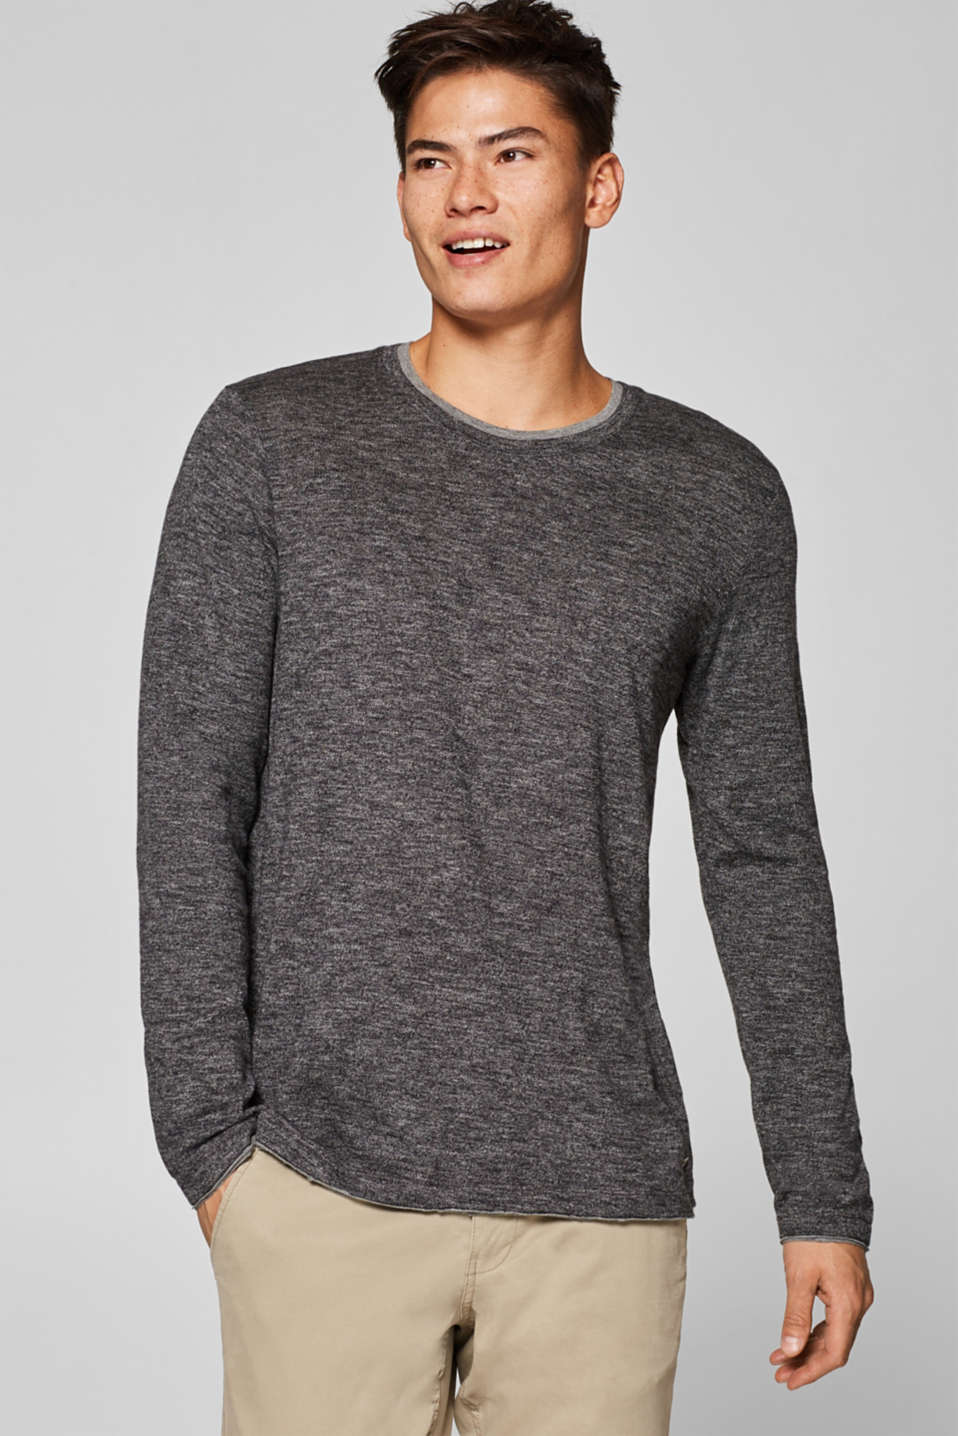 edc - Long sleeve jersey top in a layered look